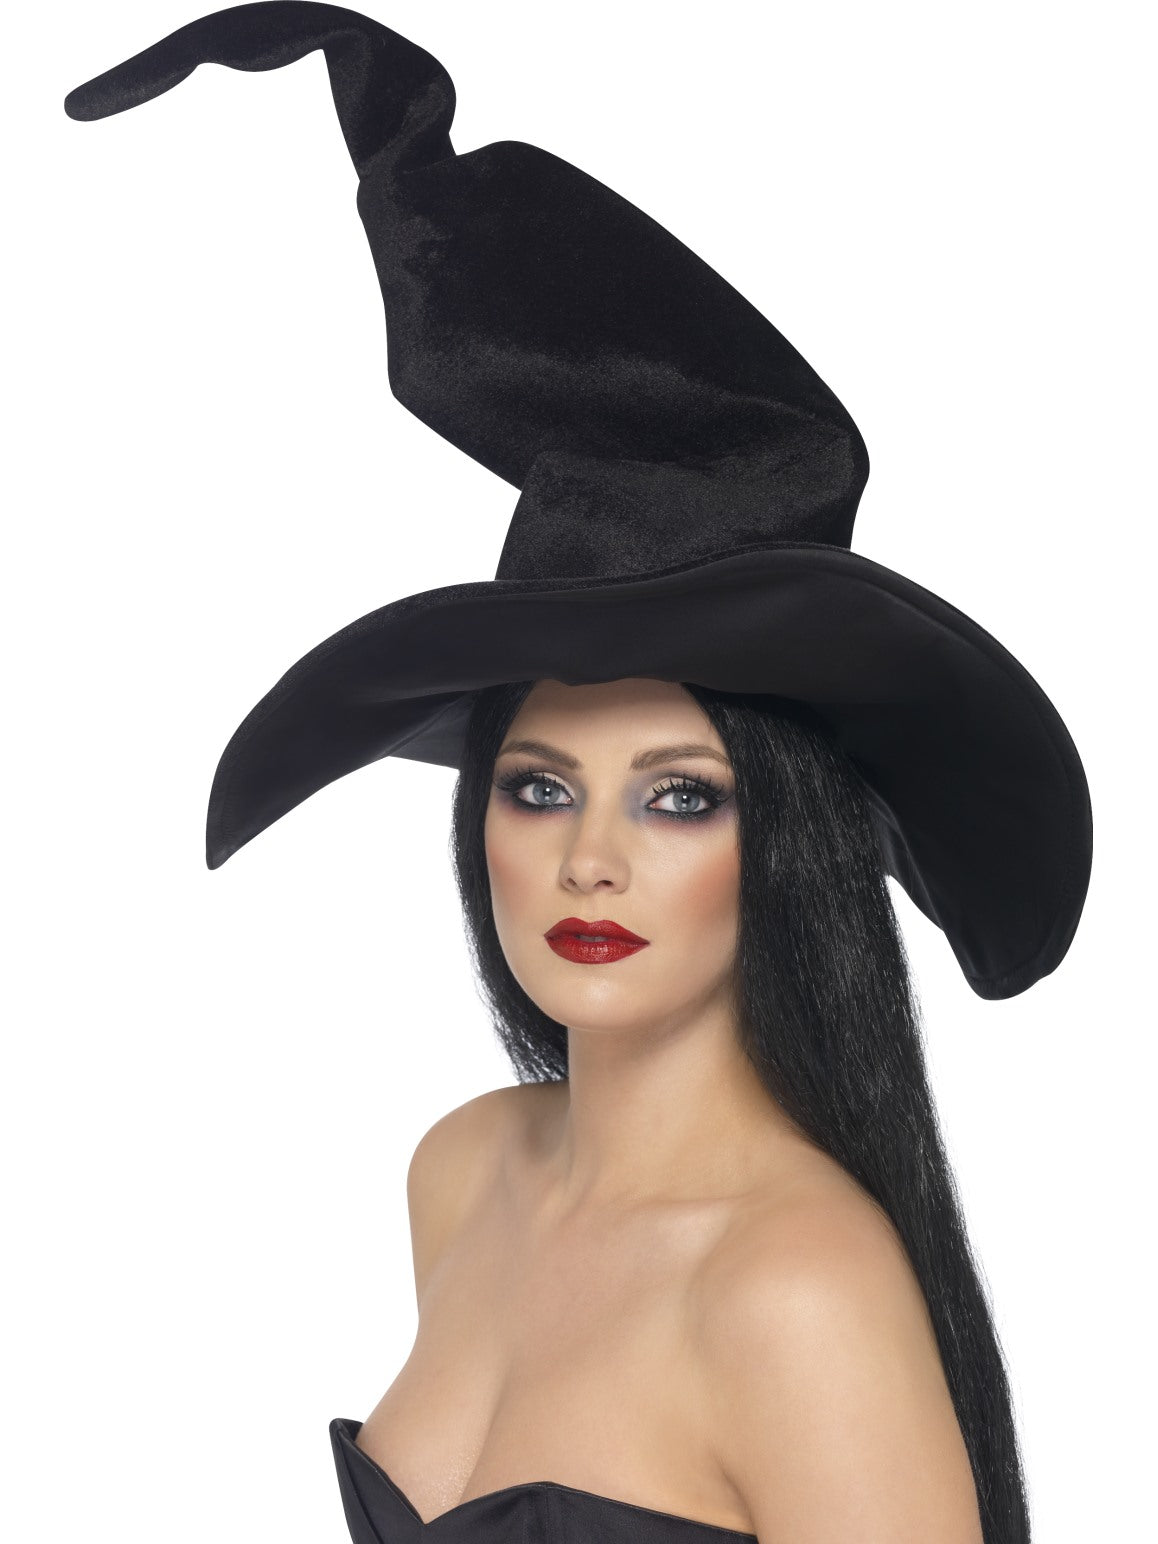 Black Tall and Twisty Witch's Hat - Party Savers